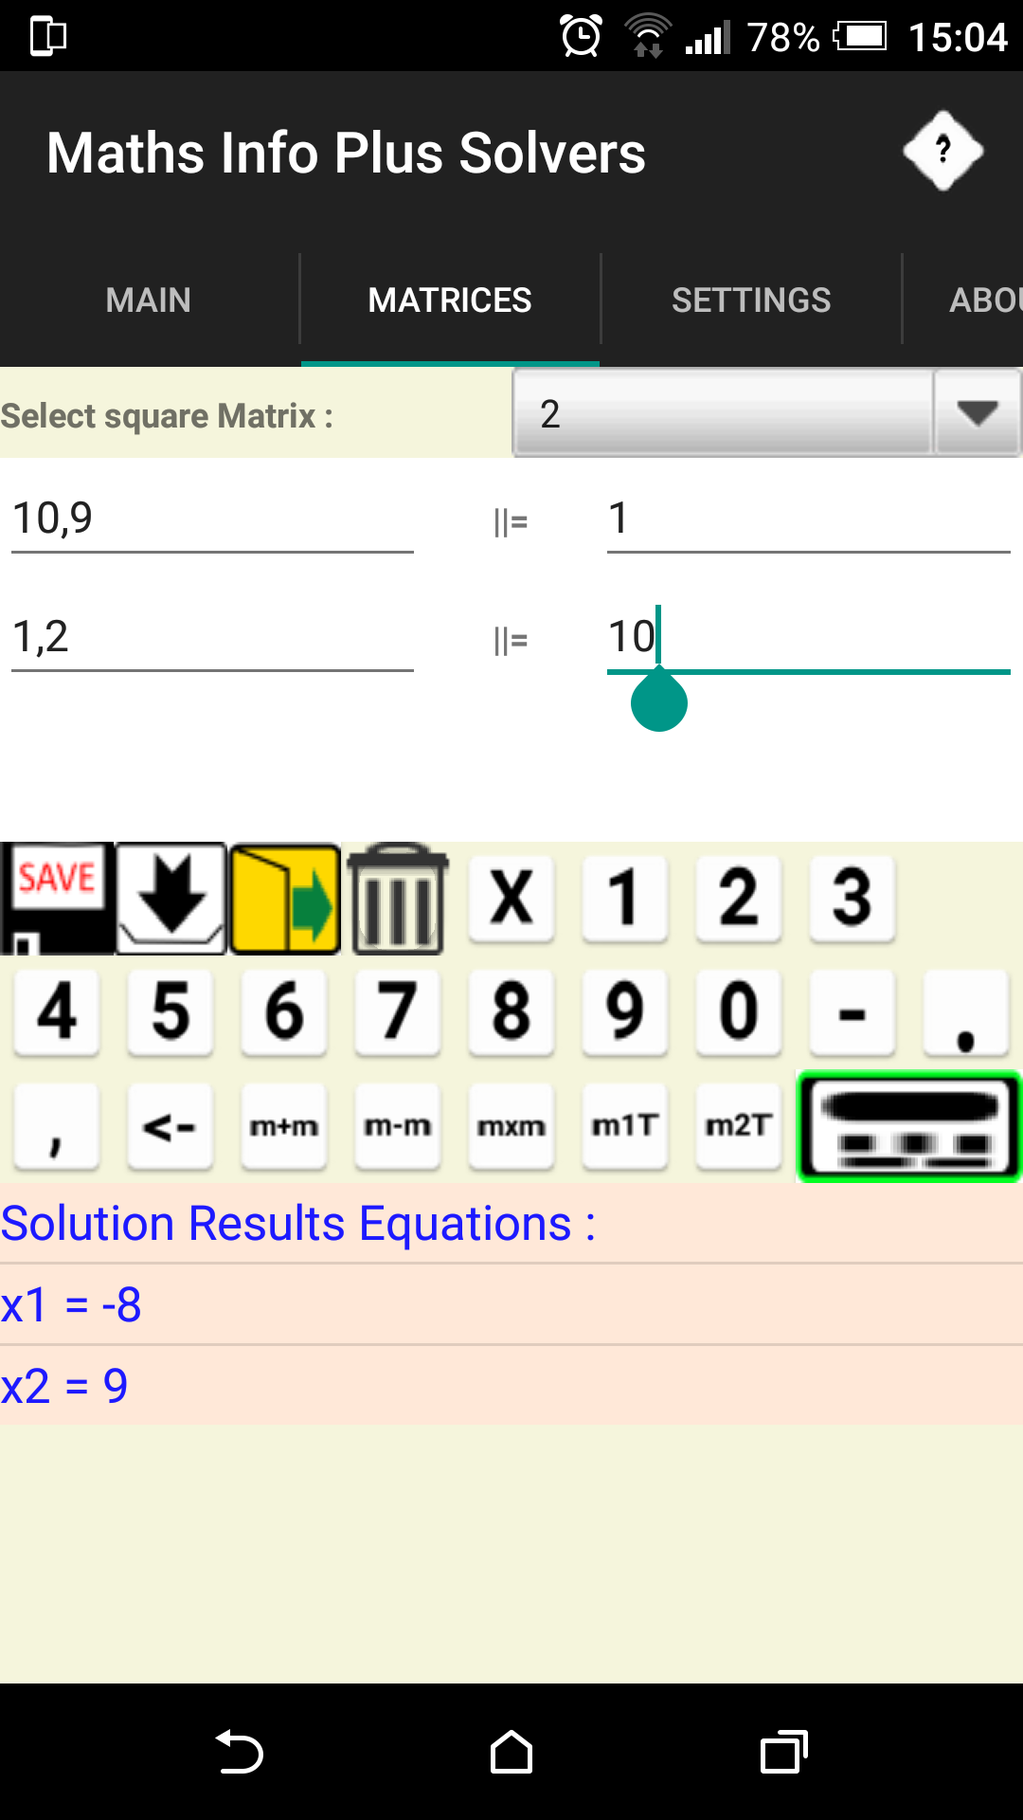 Maths Info And Solvers free Screenshot 4